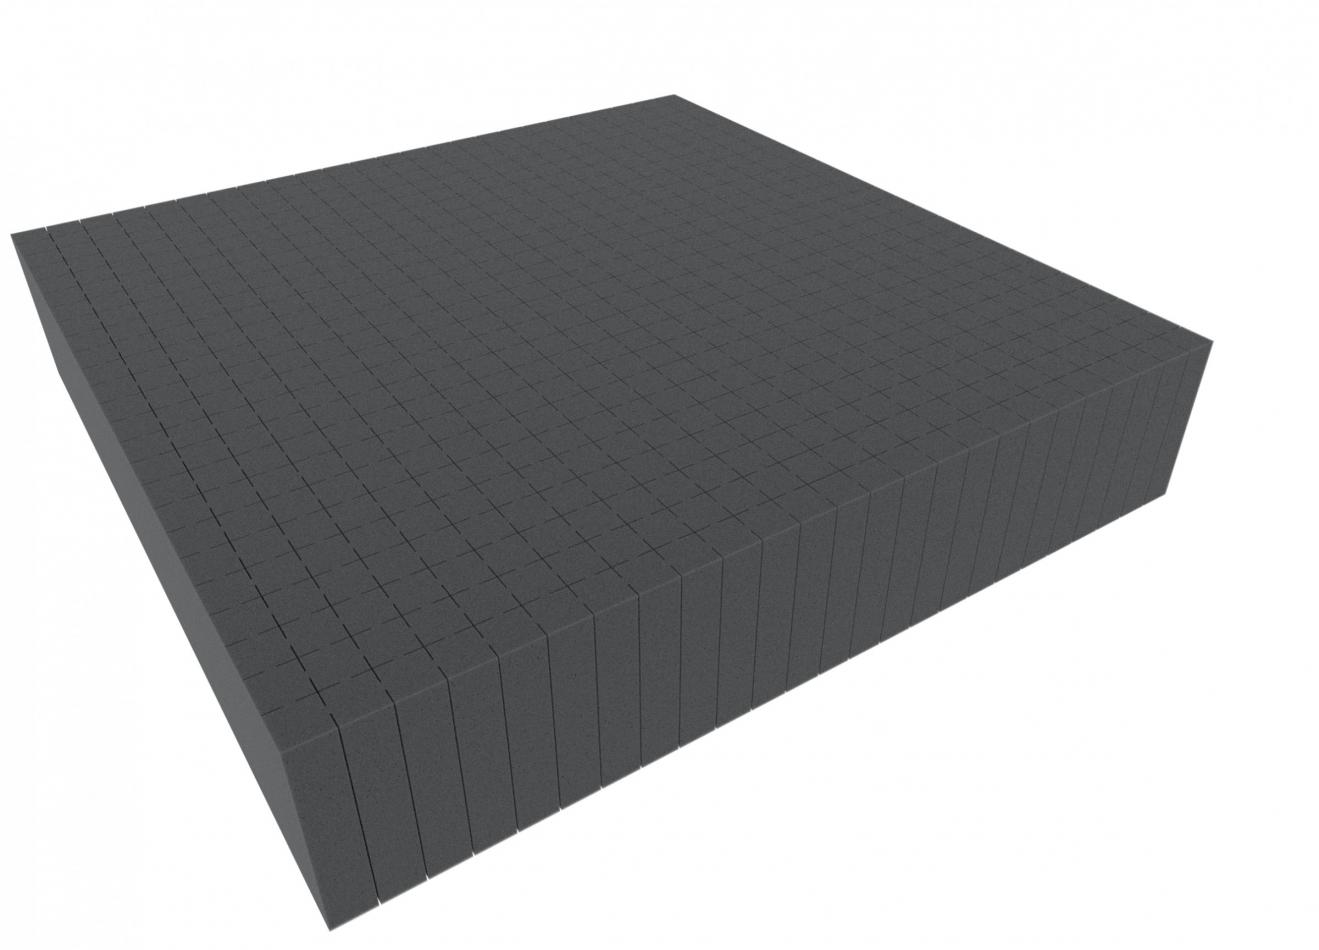 1000 mm x 1000 mm x 100 mm - Raster 20 mm - Pick and Pluck / Pre-Cubed foam tray